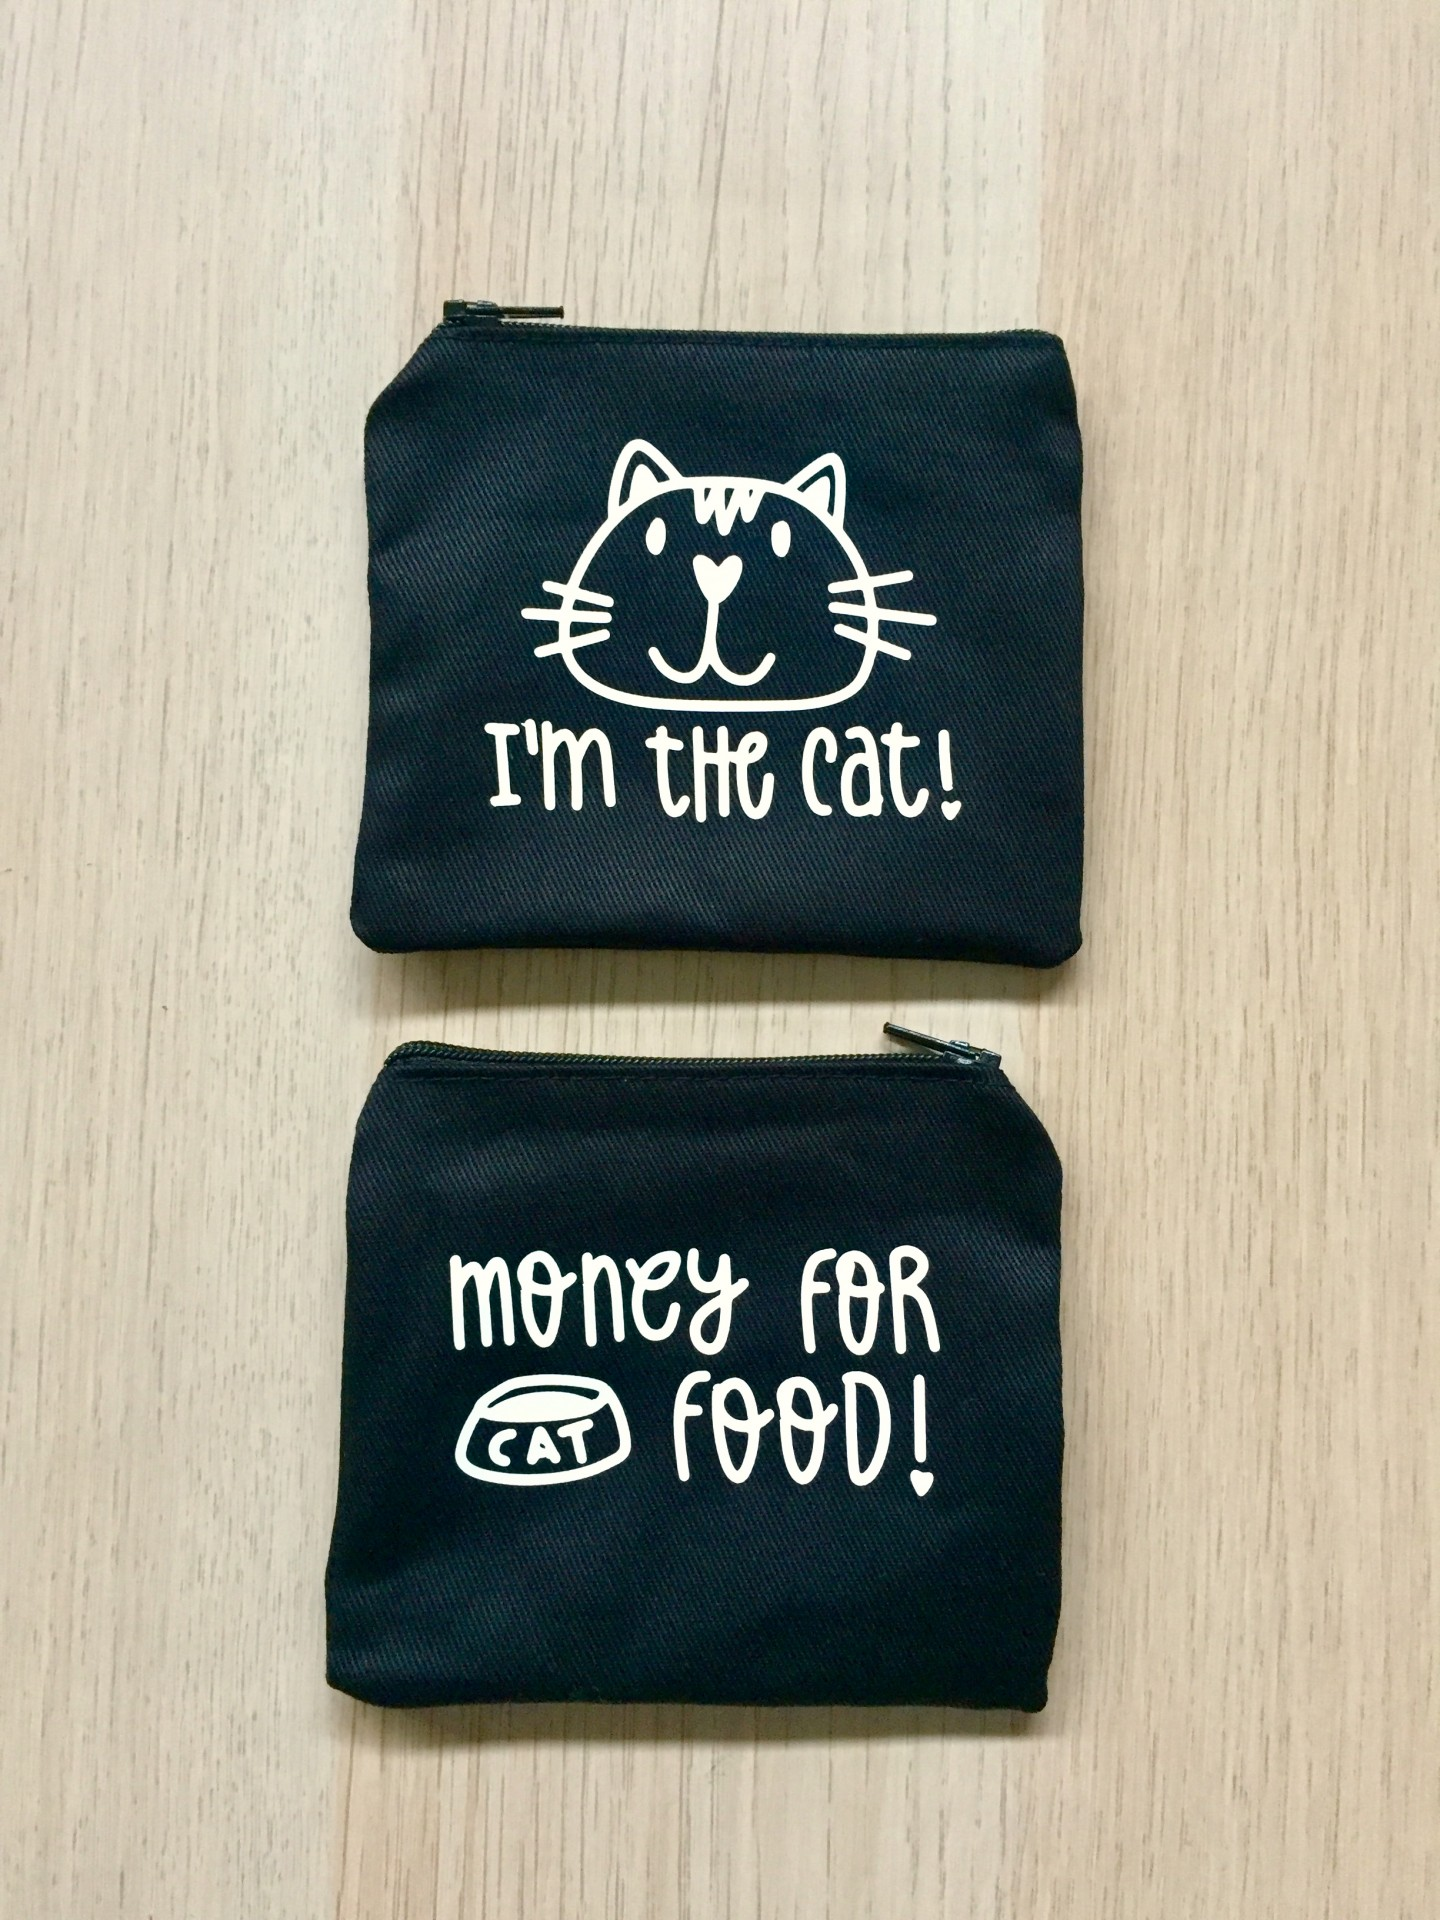 Porta-moedas Preto | Money For Cat Food